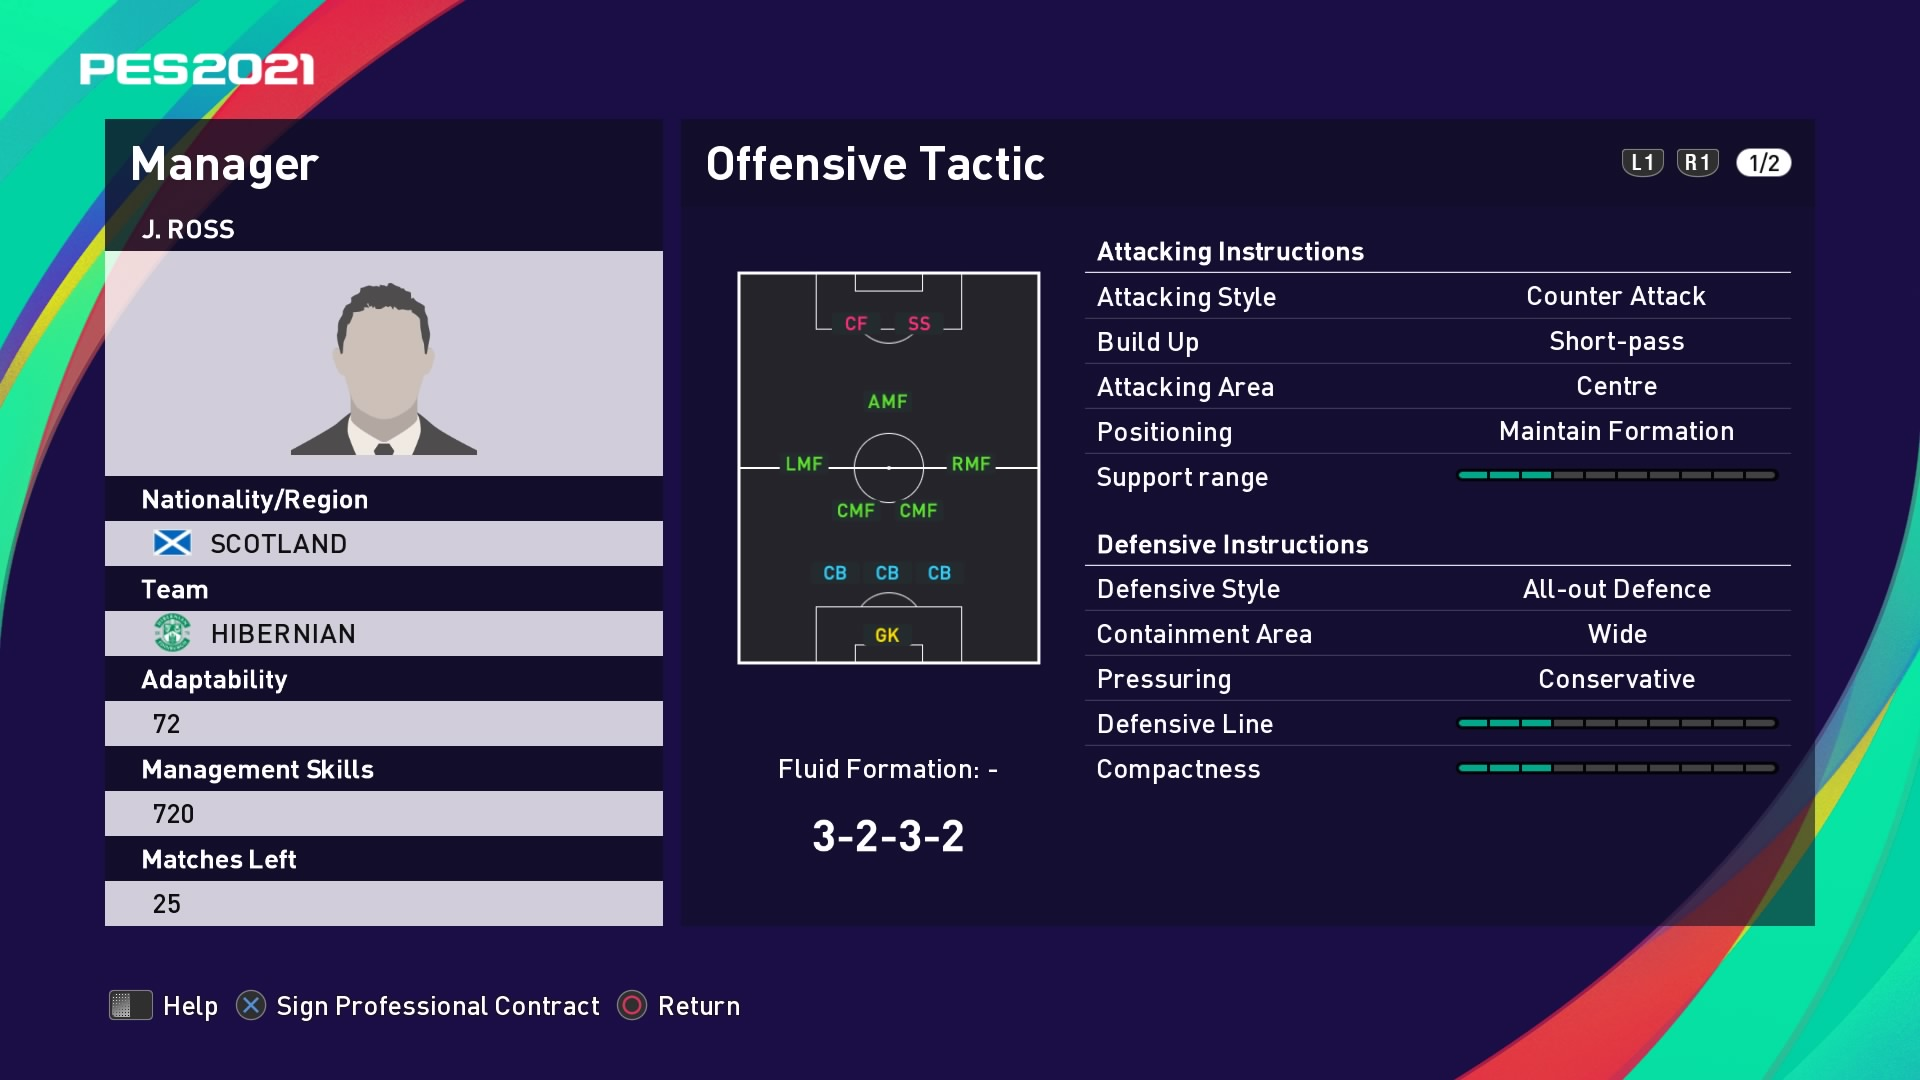 J. Ross (Jack Ross) Offensive Tactic in PES 2021 myClub